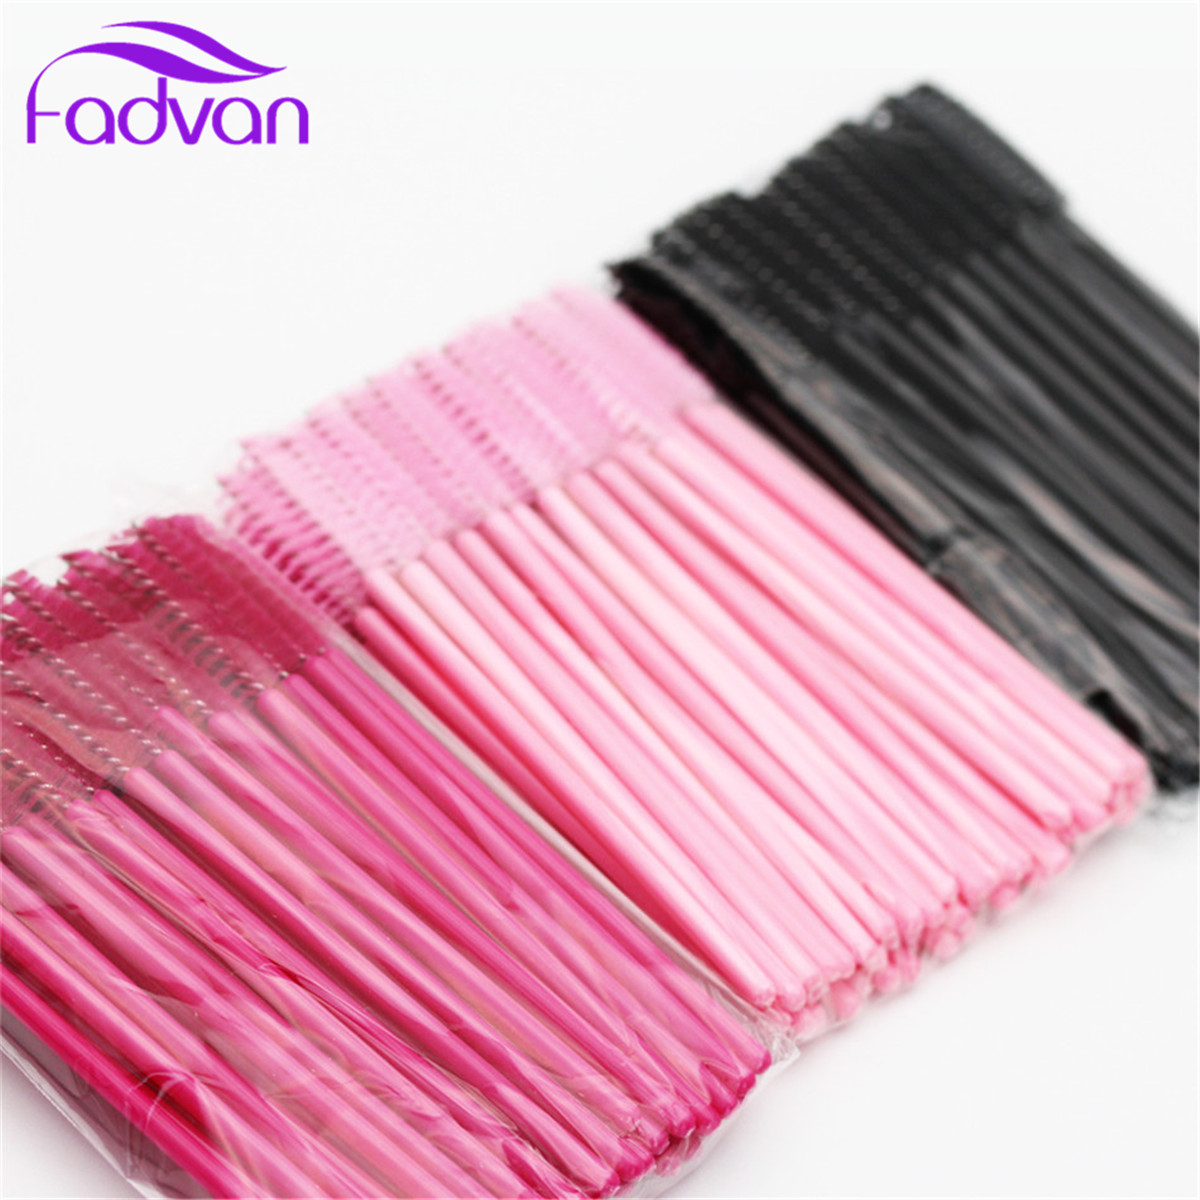 New 100 Pcs/Set Disposable Eyelash Brush Mascara Wands Applicator Spoolers Eye Lashes Eyebrow Brush Eyelash Brush Long Six Color брюки прямые из льна